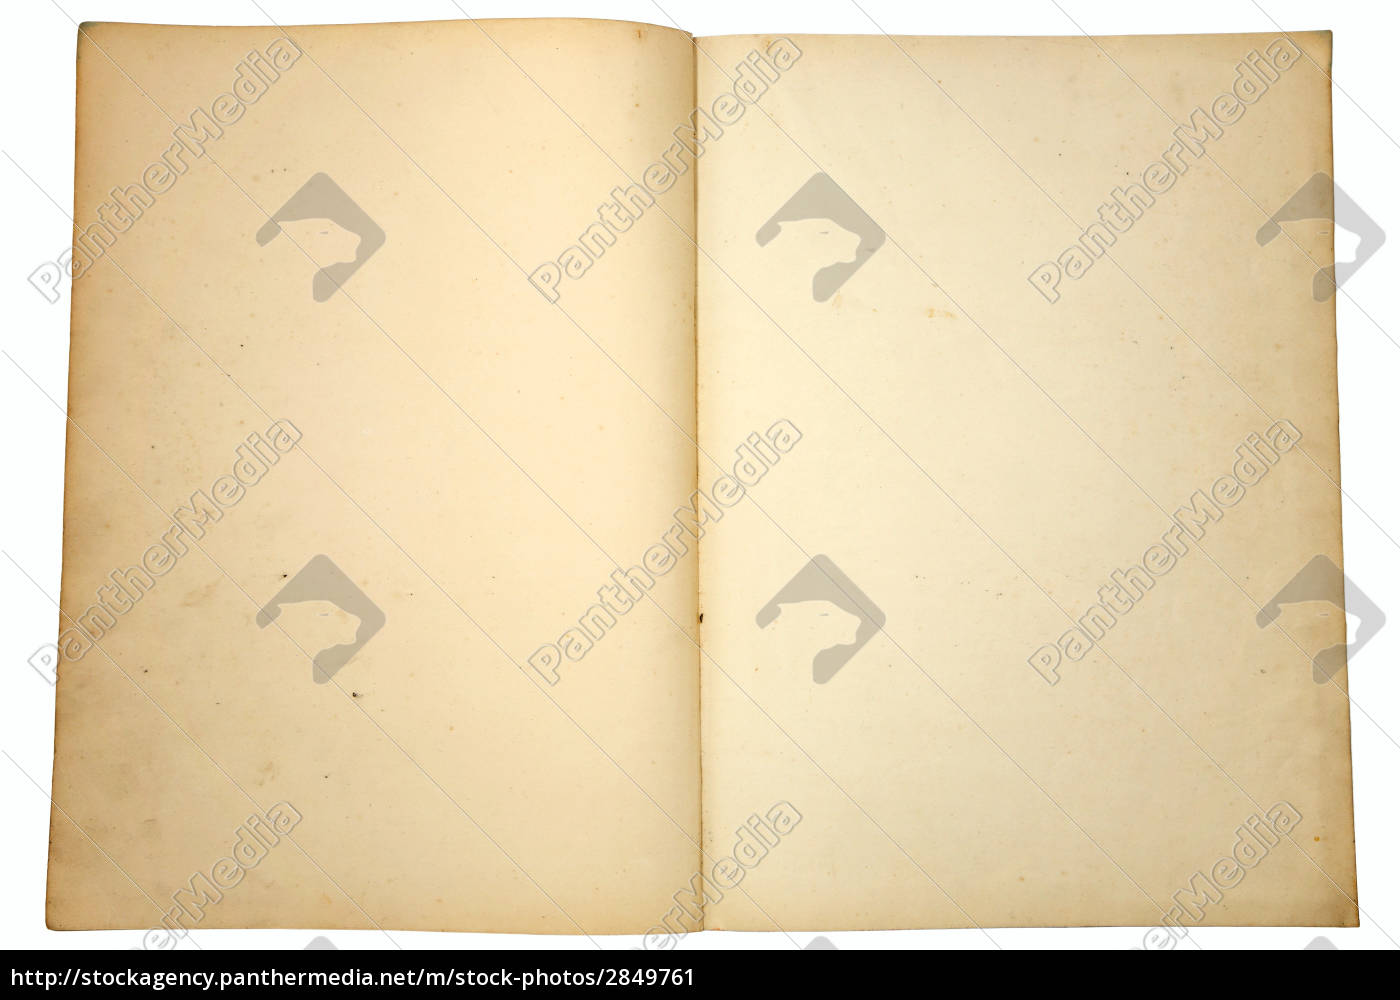 blank, yellowing, paper, pages, from, a - 2849761